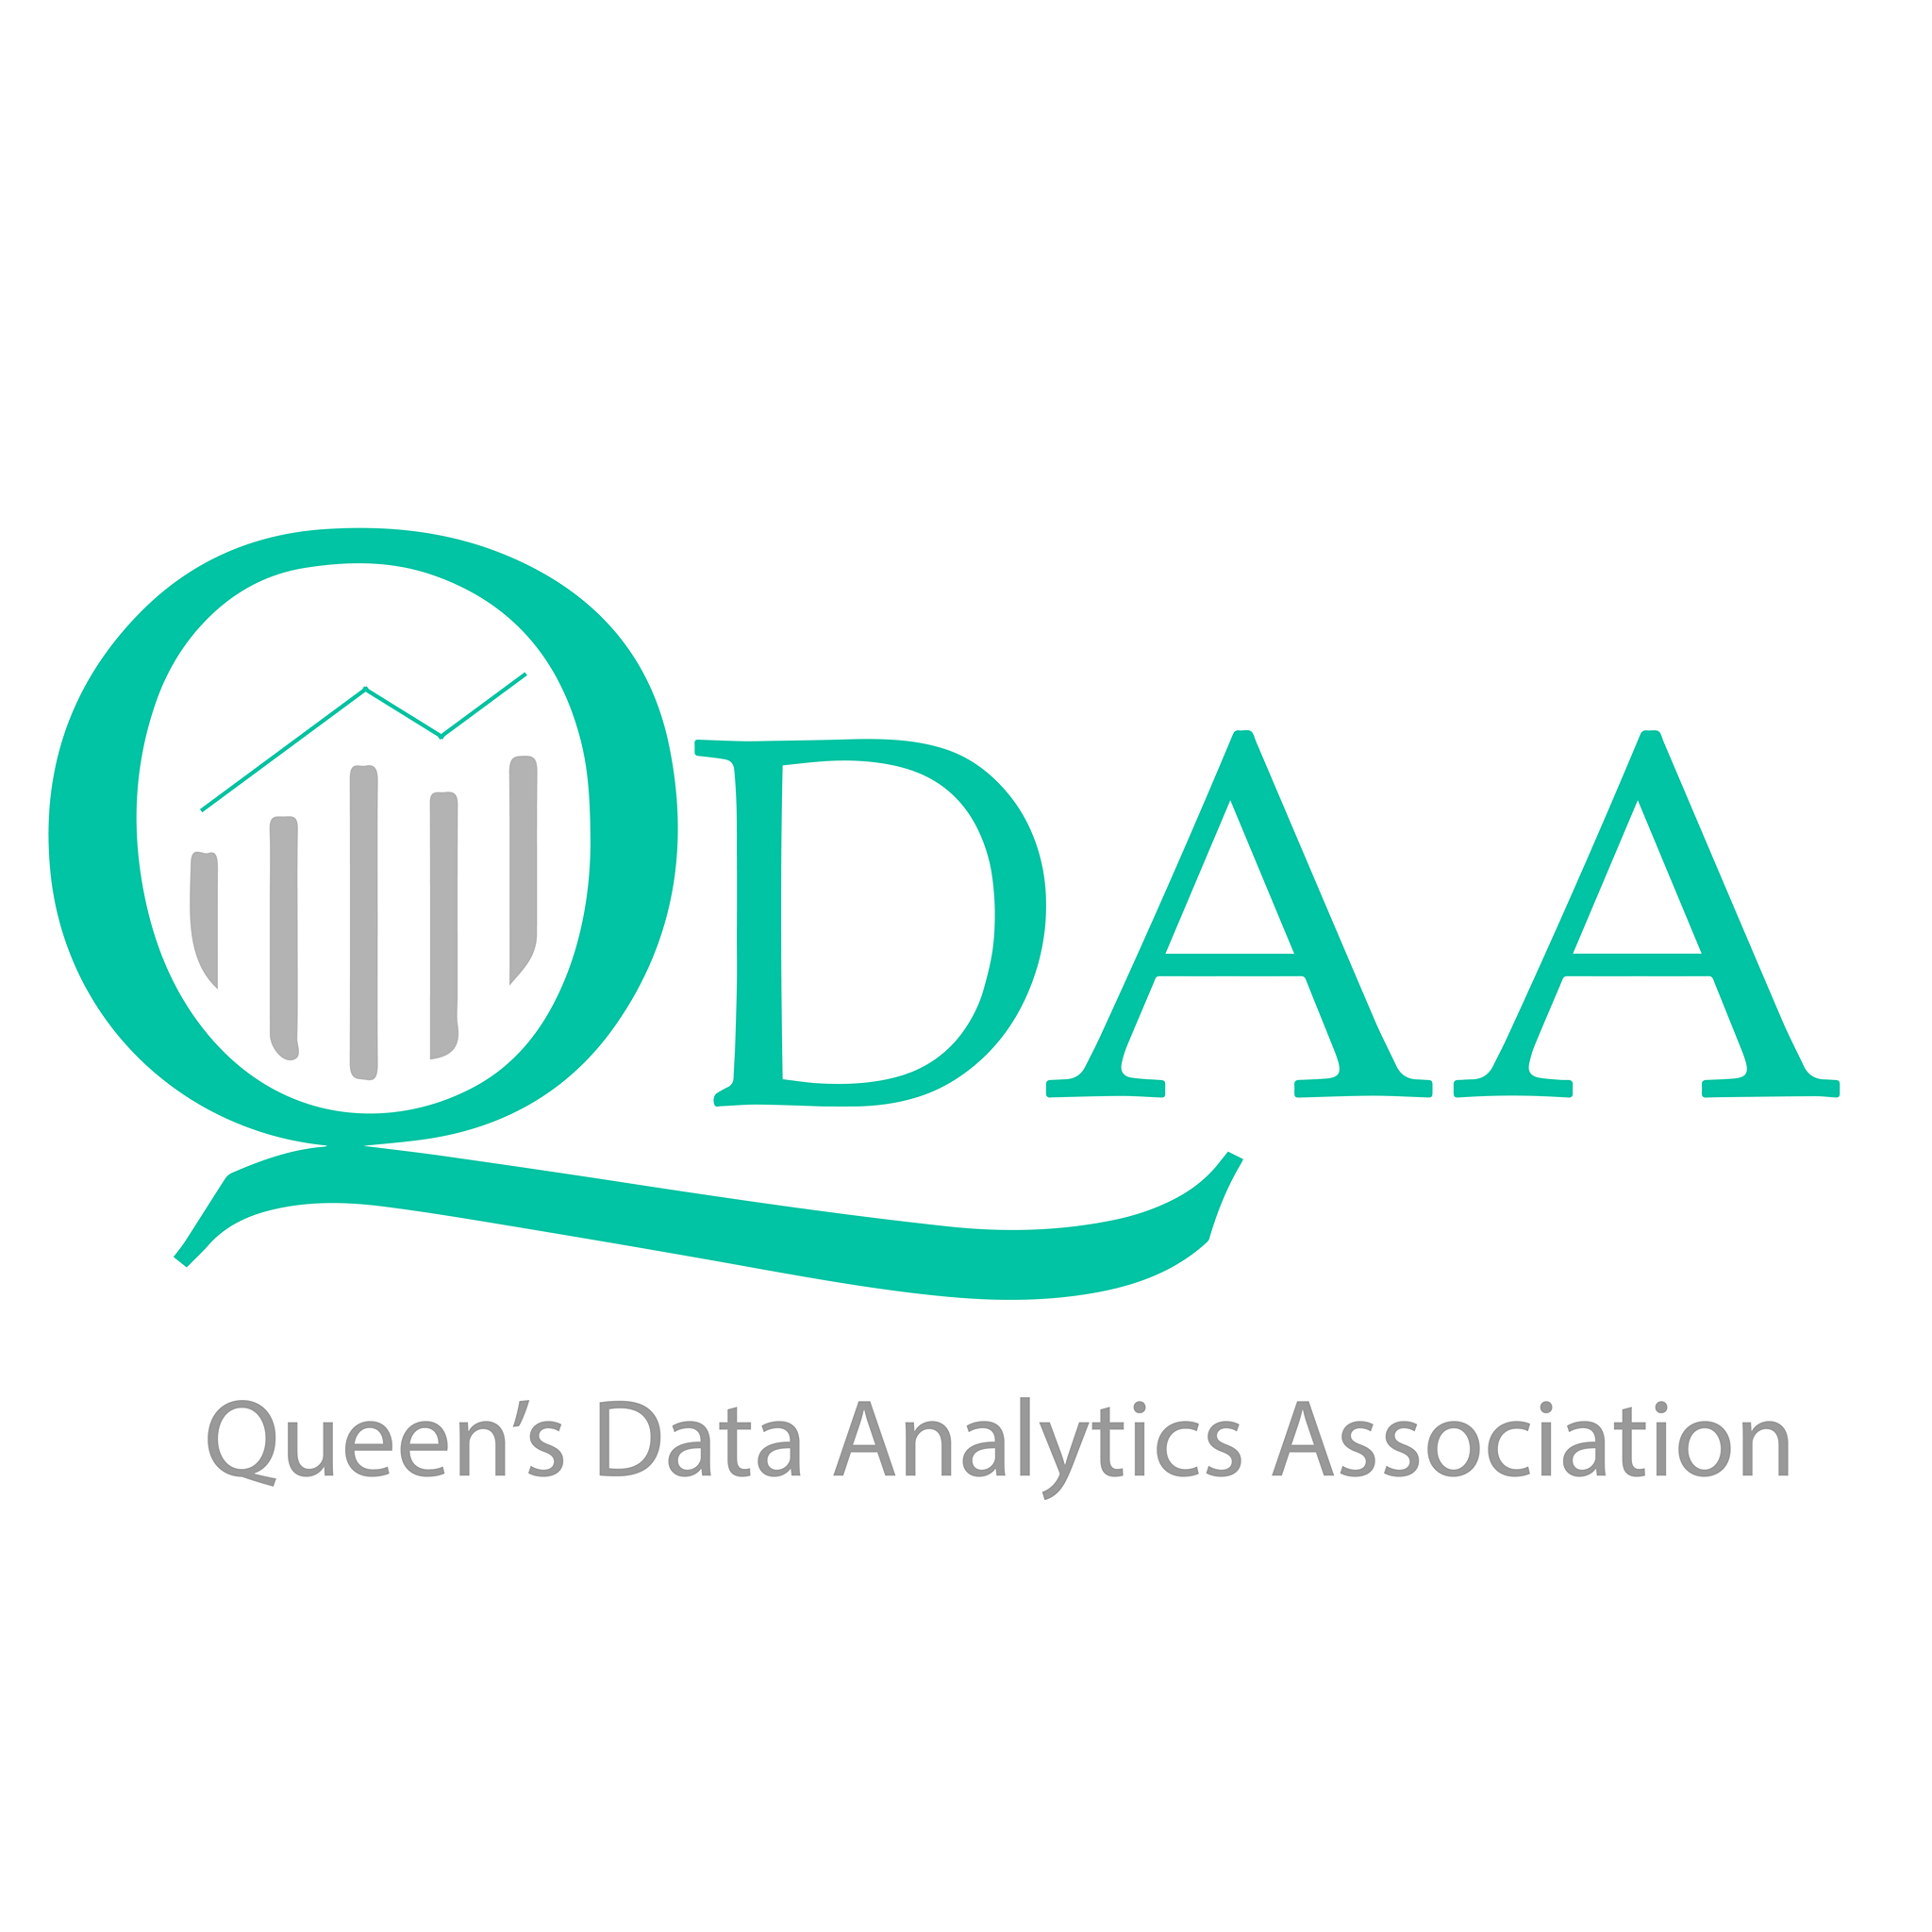 Queen's Data Analytics Association